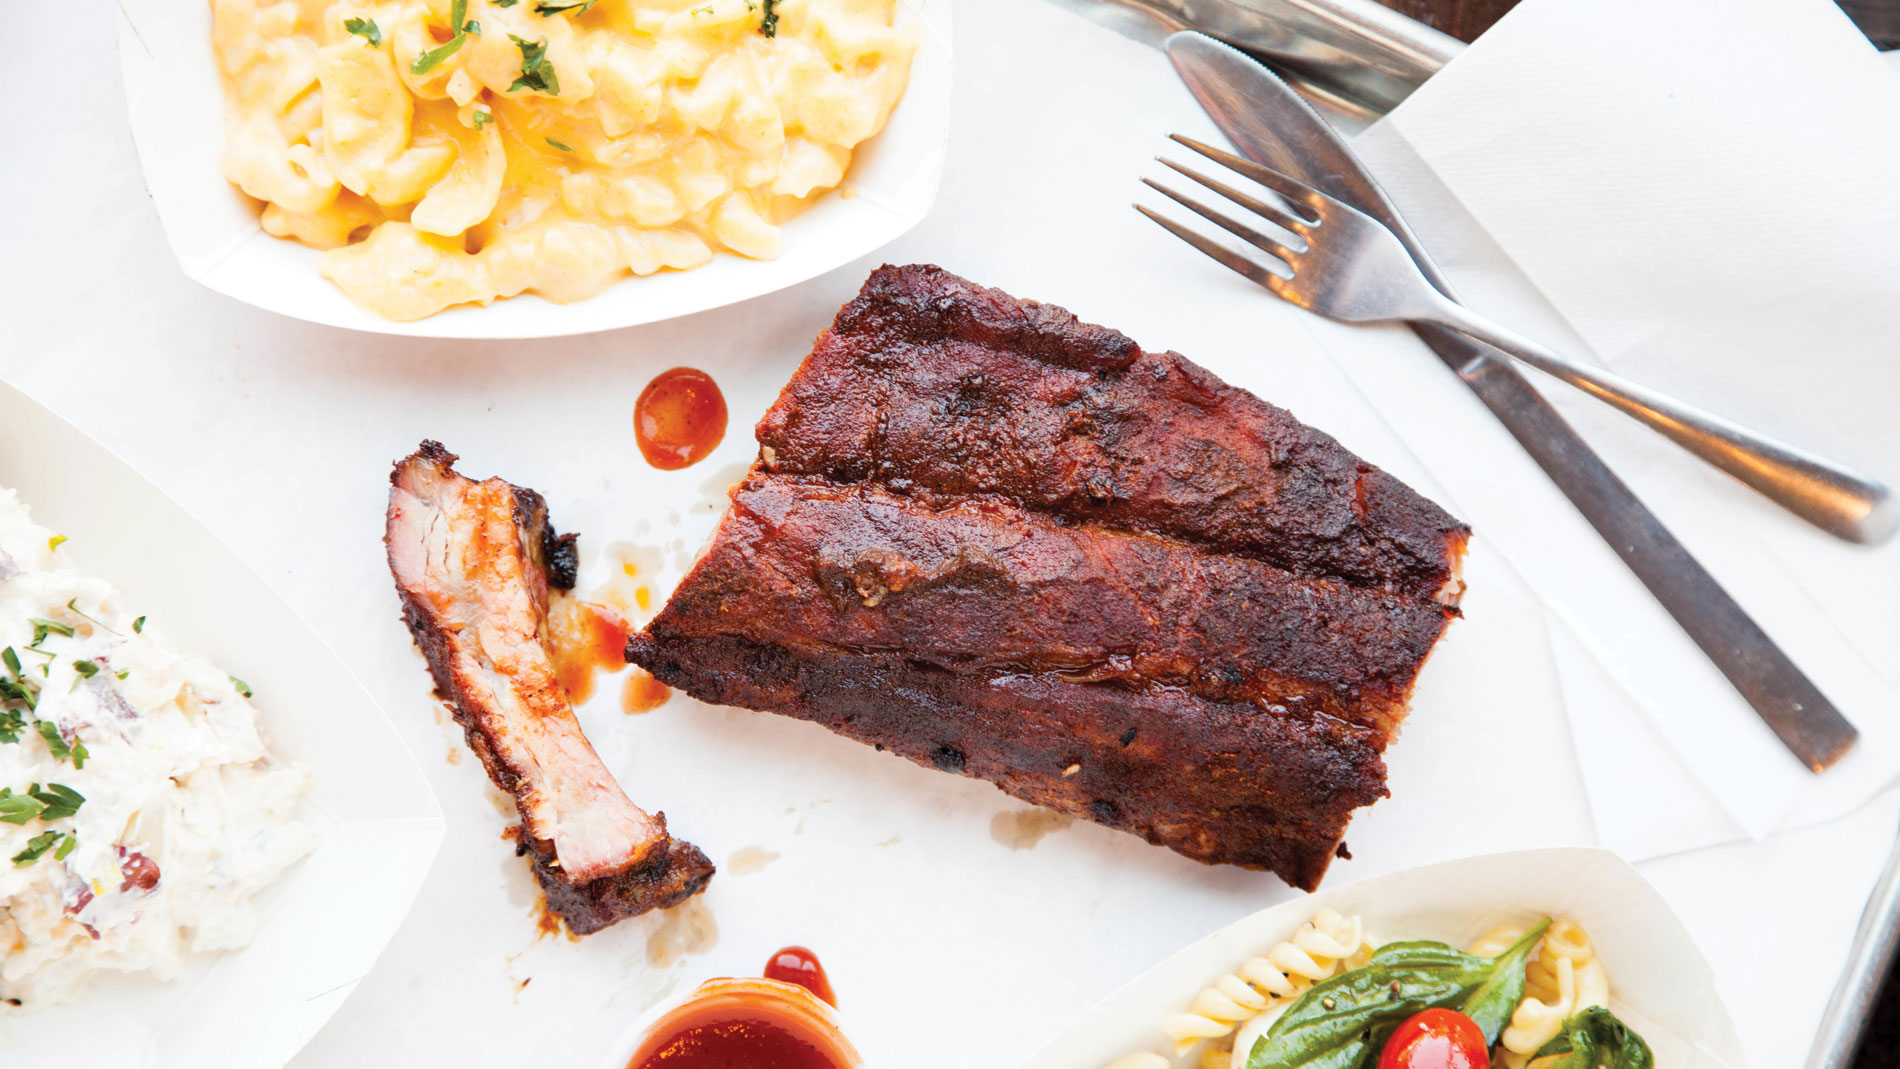 three barbecue ribs with sides of mac and cheese and salad on a white tablecloth